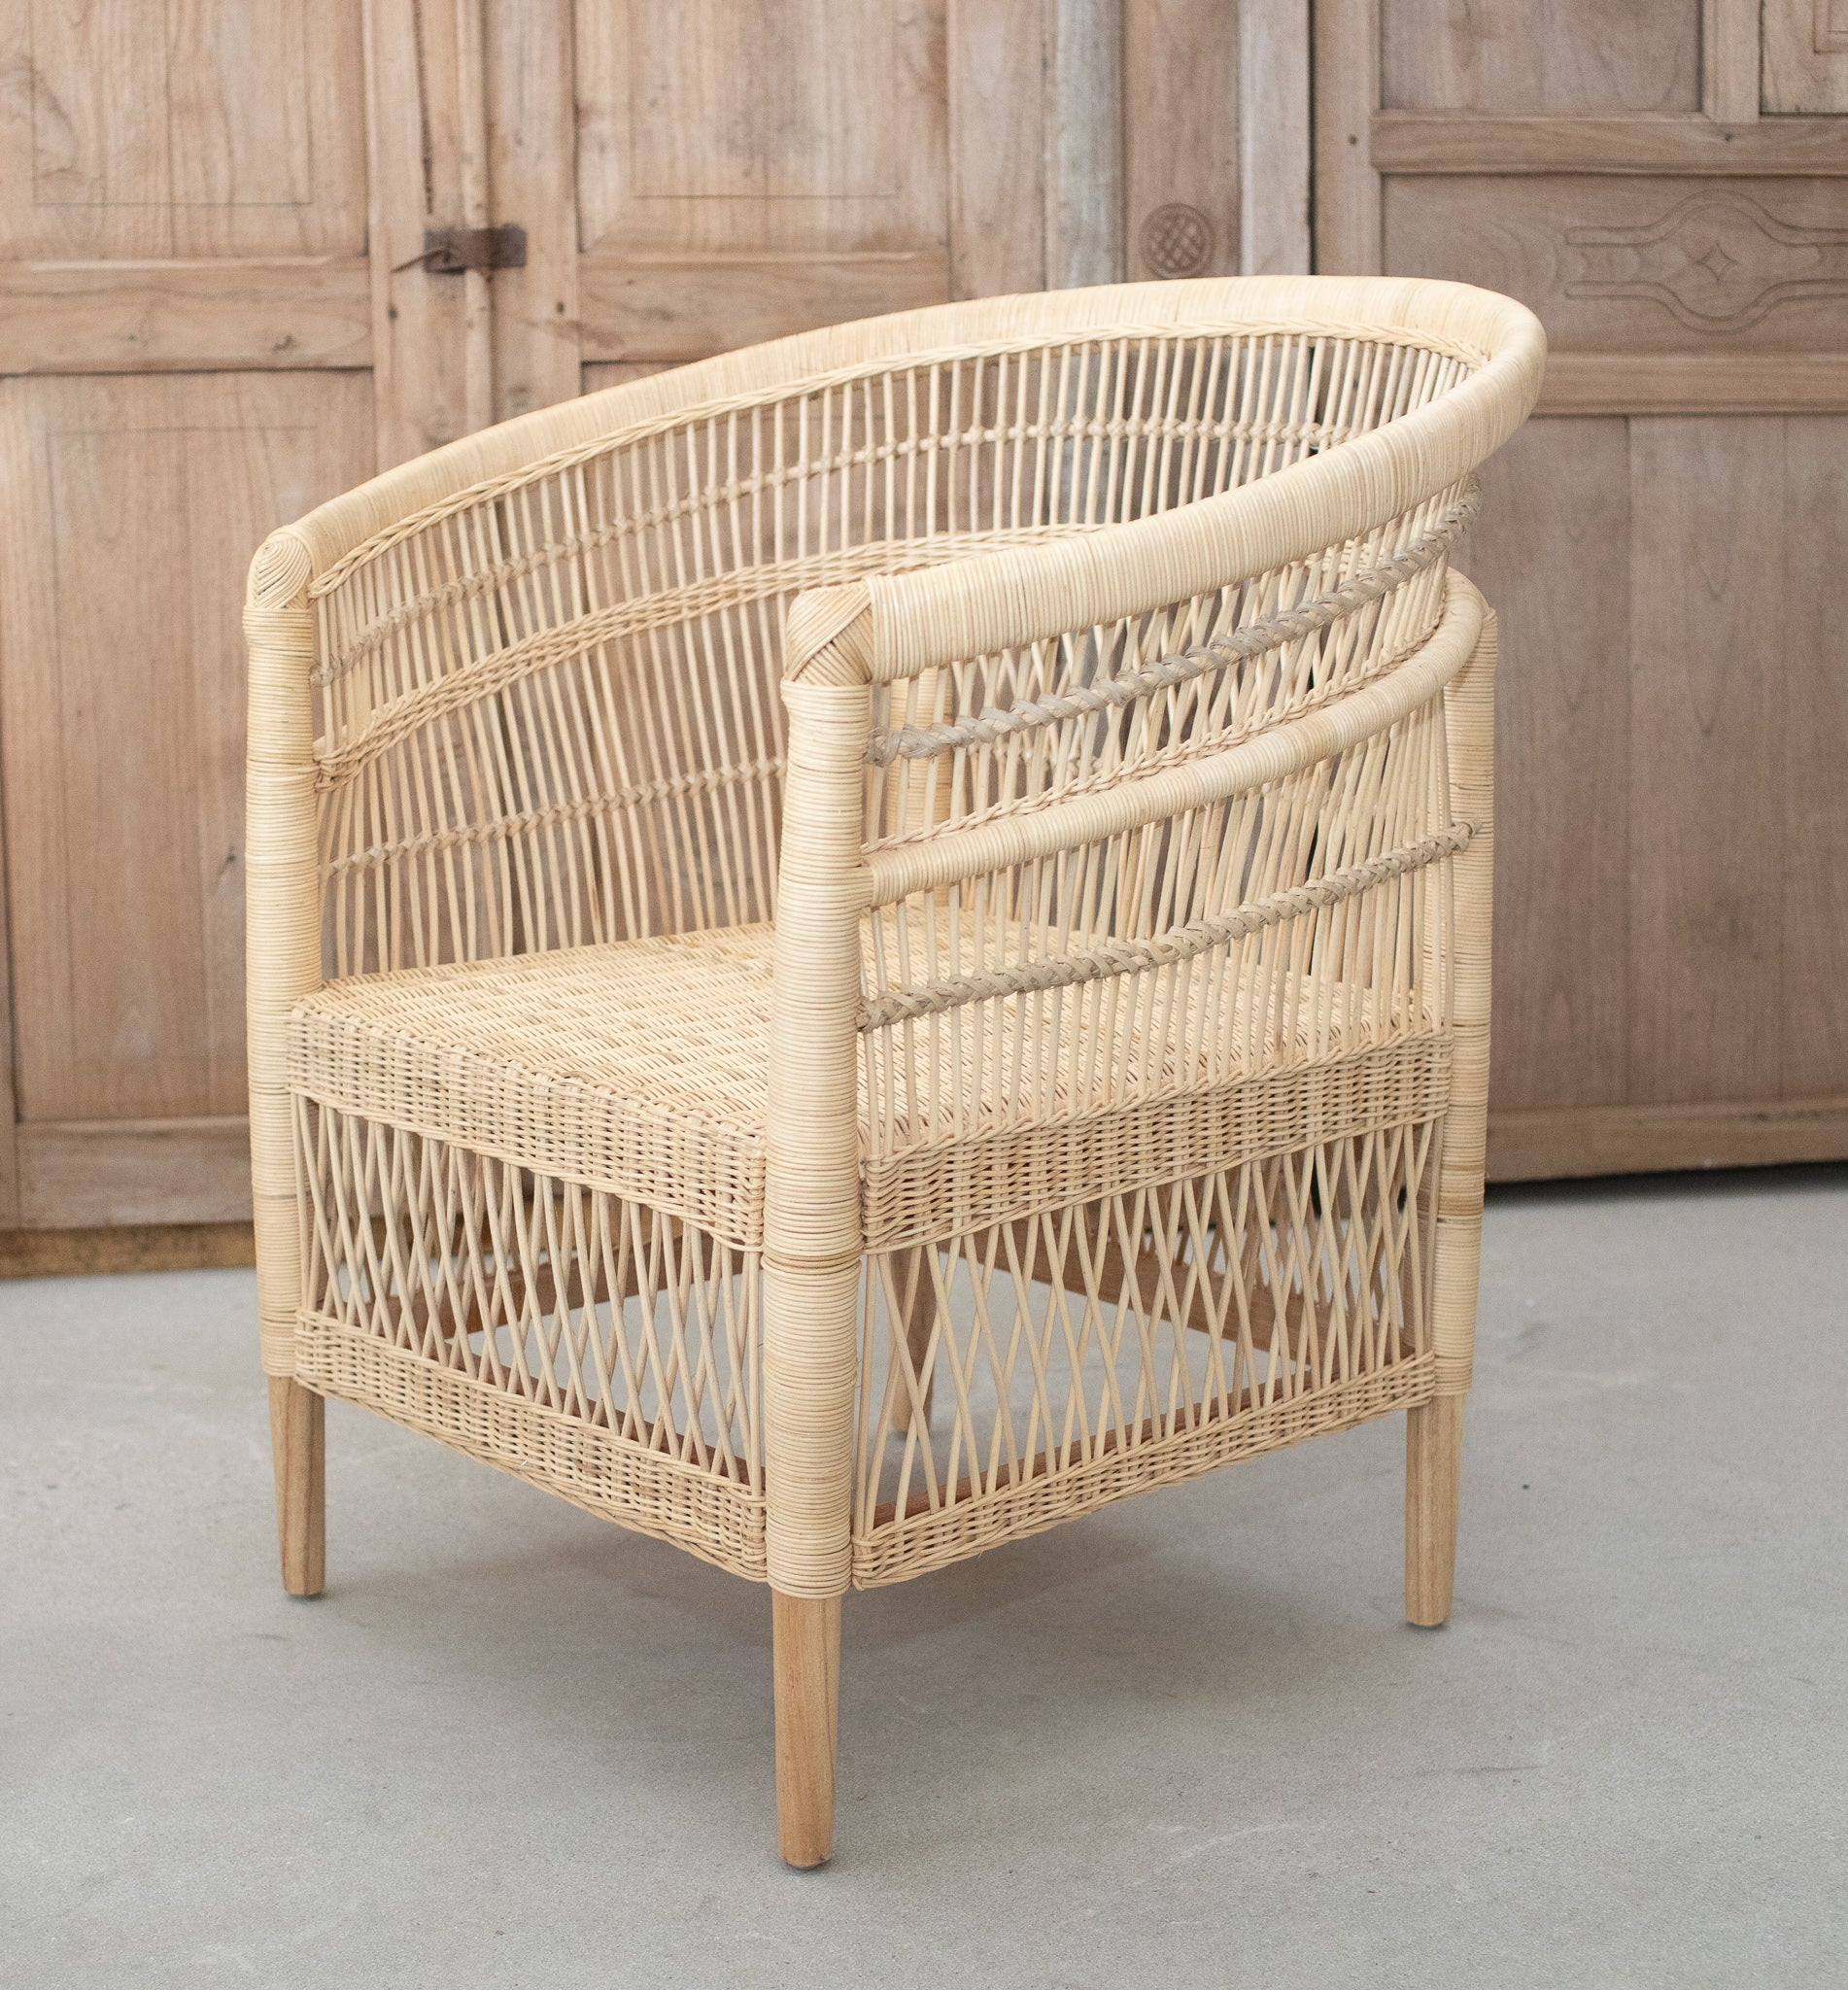 Malawi Natural Rattan Chair Made To Order